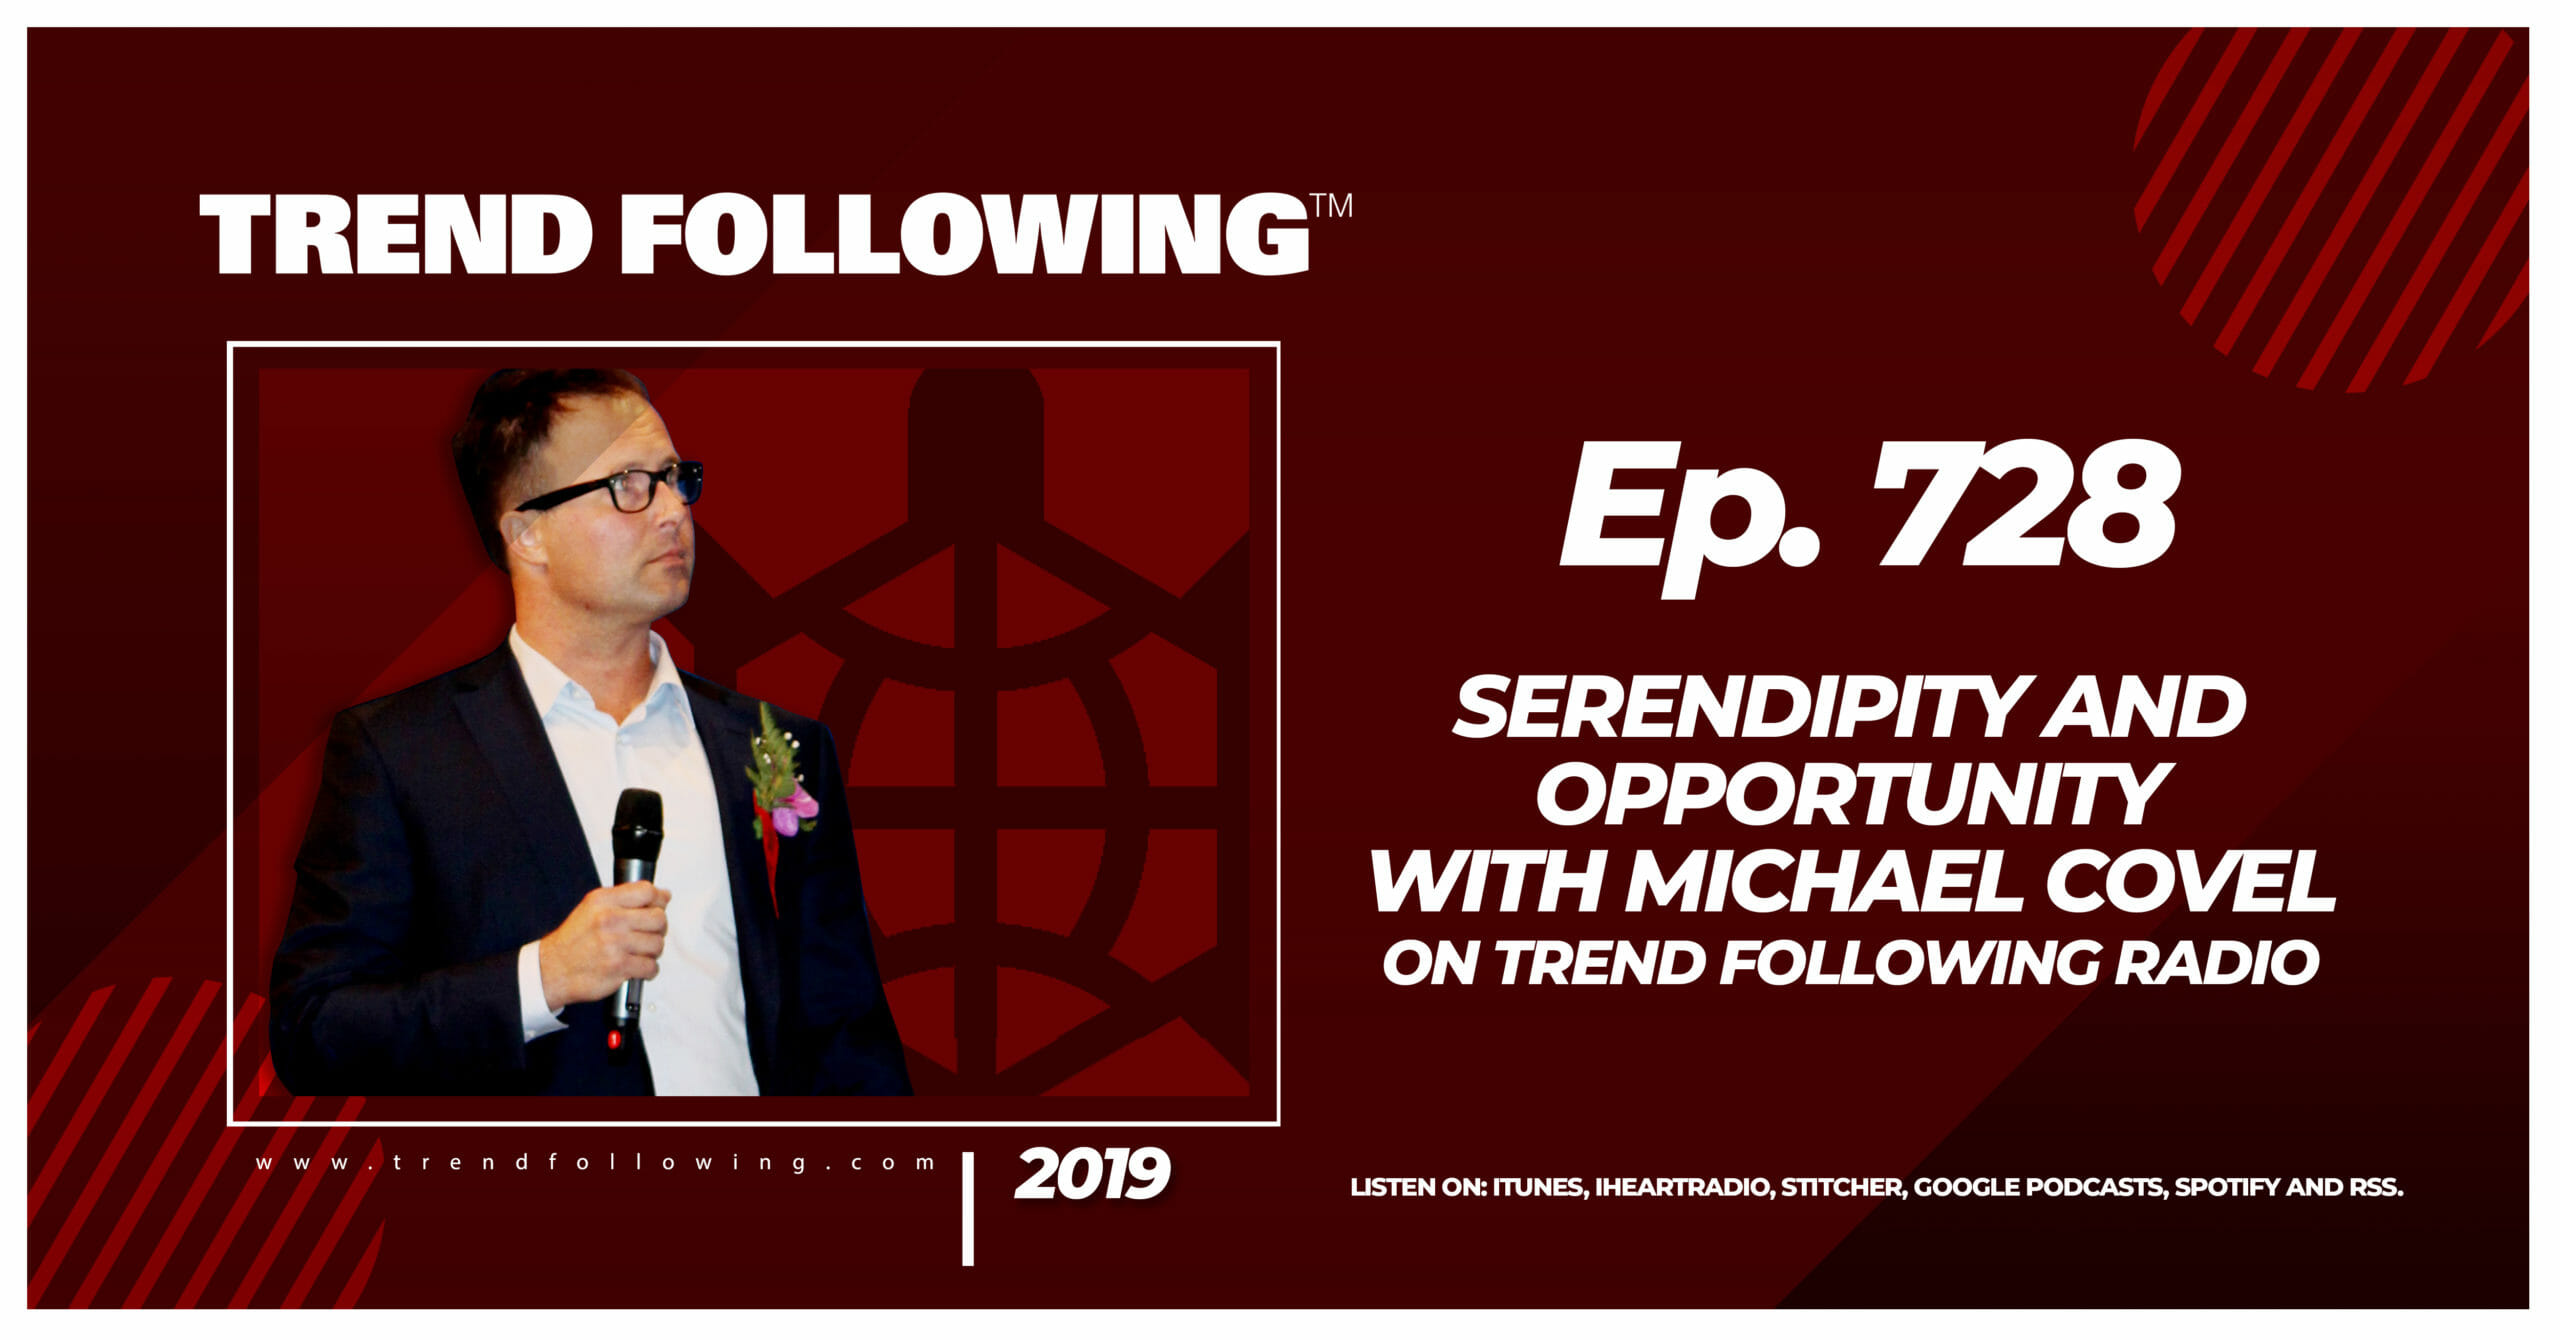 Serendipity and Opportunity with Michael Covel